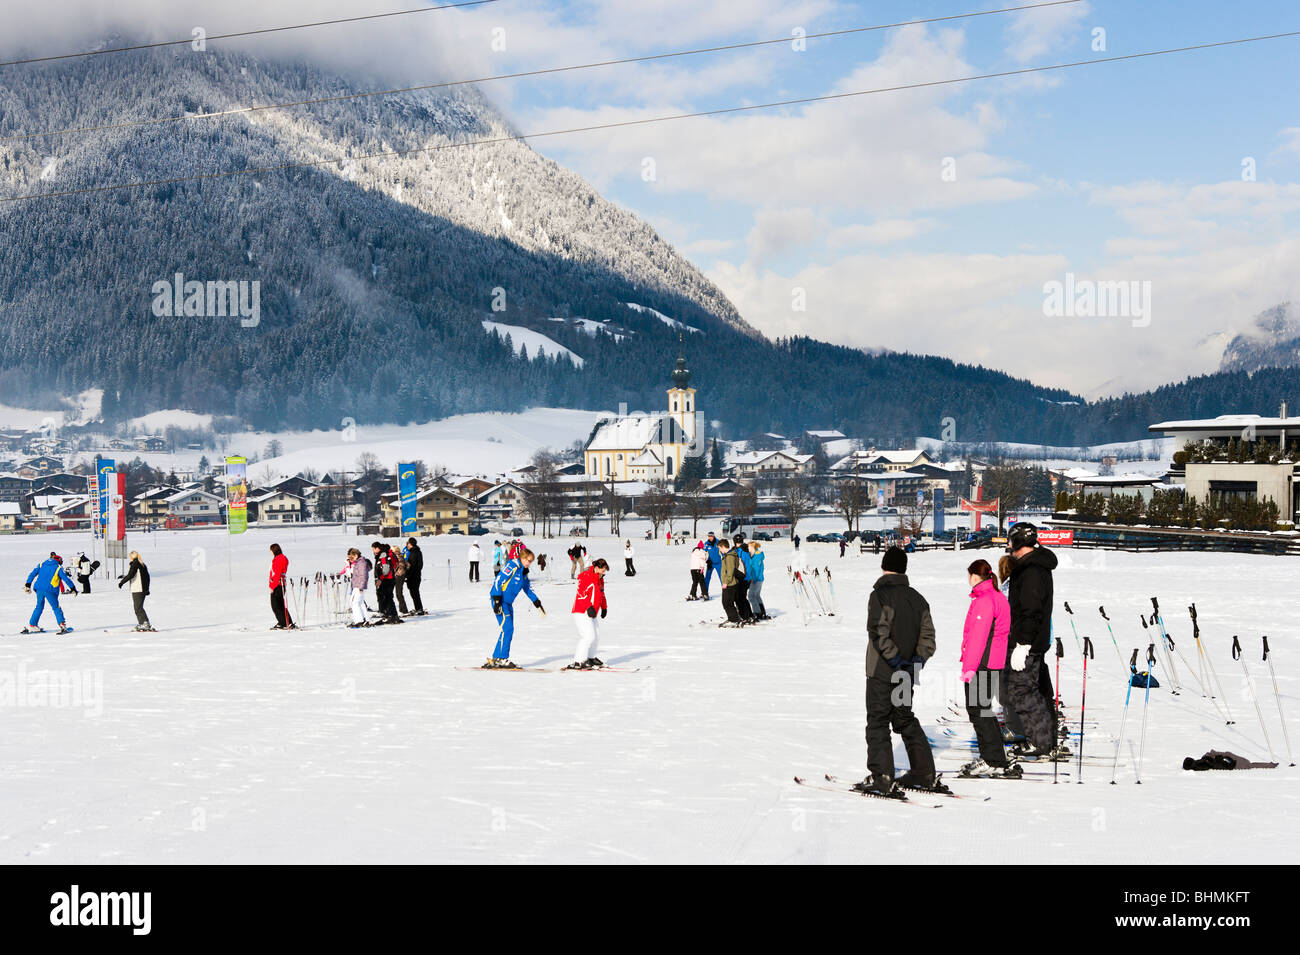 Ski school on the nursery slopes just outside the resort of Soll, SkiWelt ski region, Tyrol, Austria - Stock Image